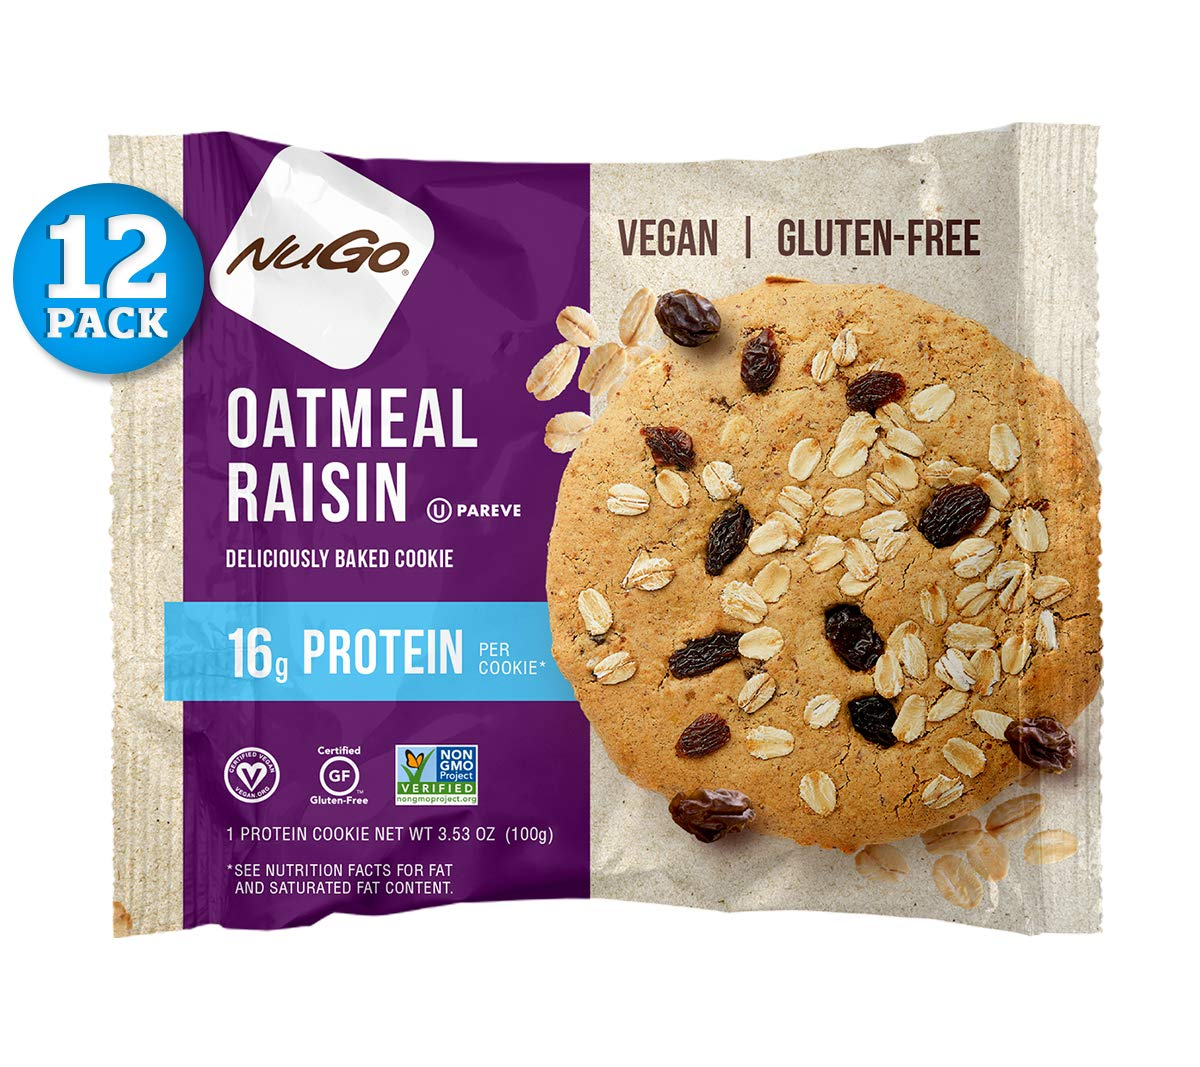 NuGo Protein Cookie, Oatmeal Raisin, 16g Vegan Protein, Gluten Free, Soy Free, 12 Count by NuGo